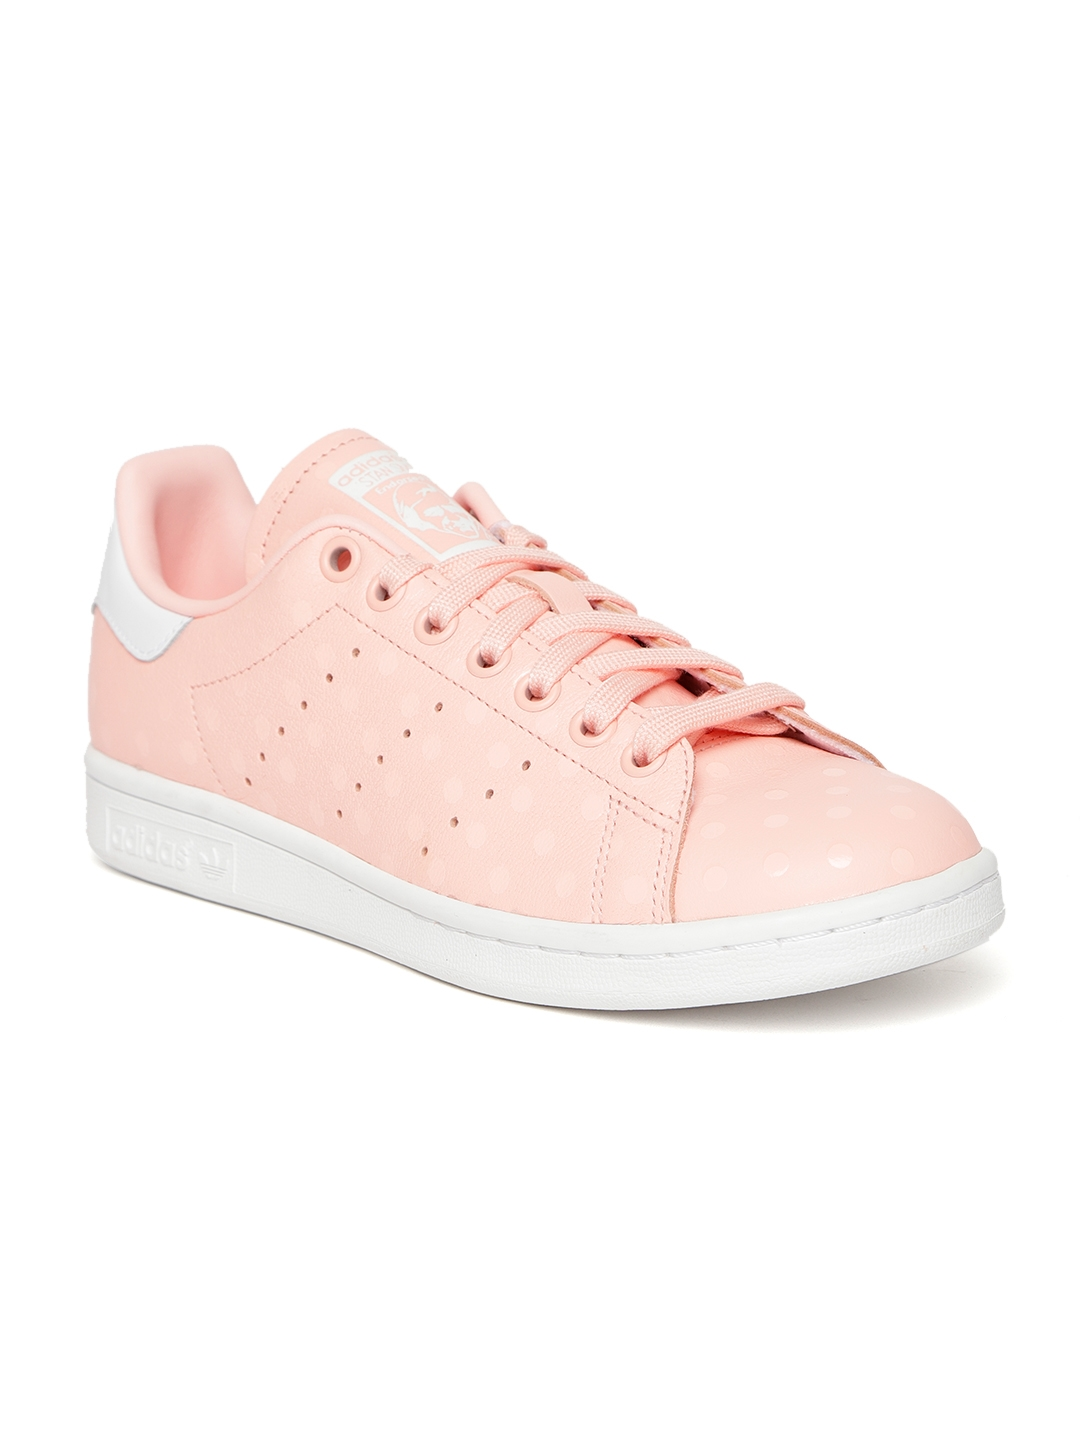 best service eeadb 3c938 Adidas Originals Women Pink Stan Smith Leather Sneakers